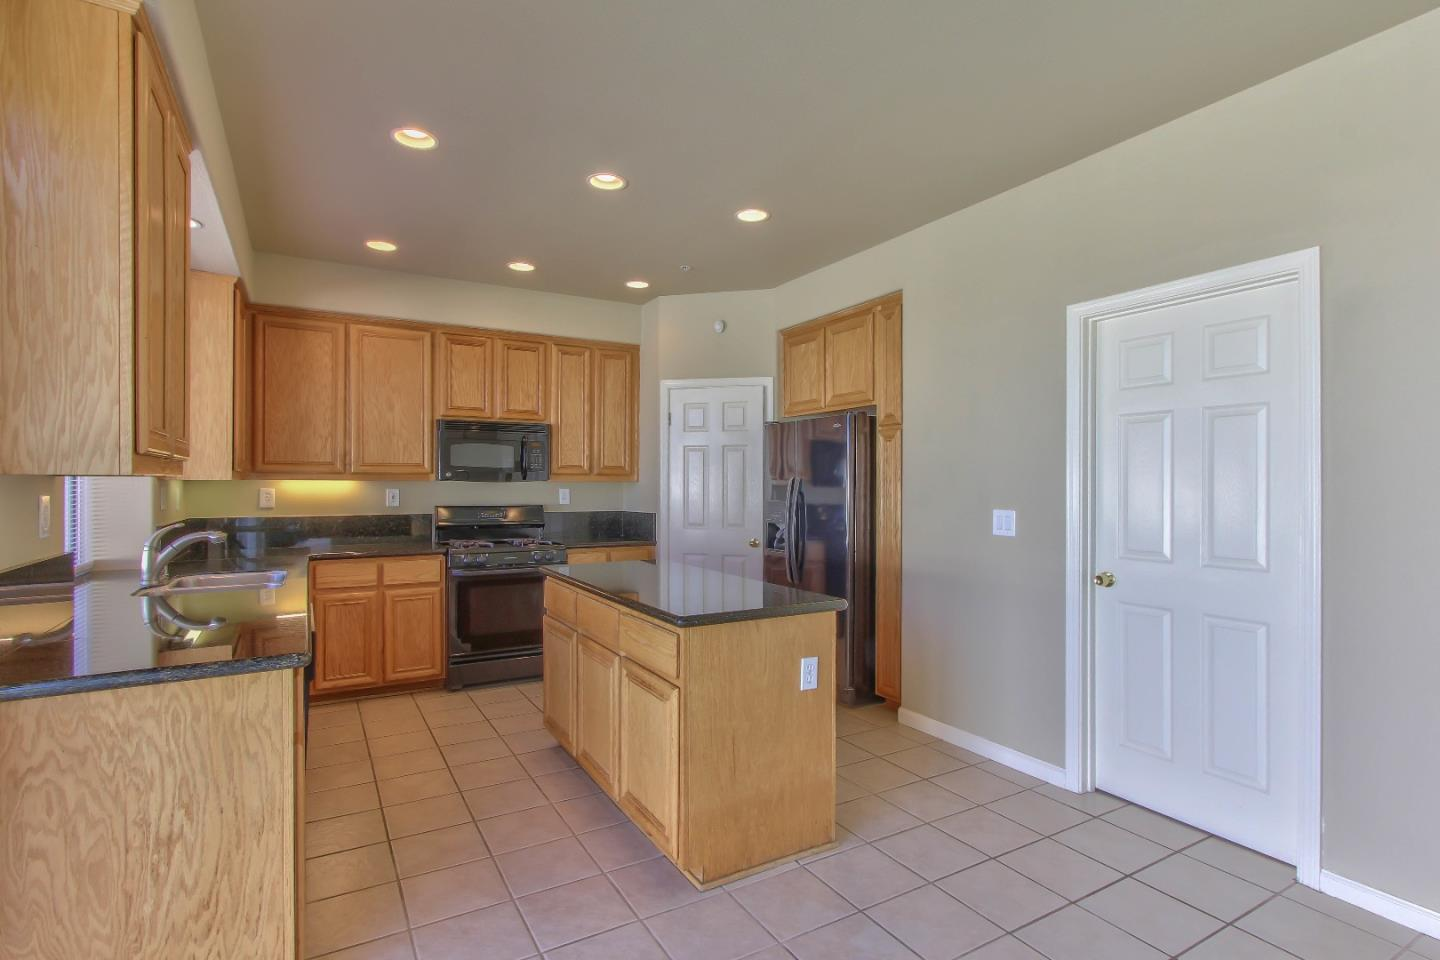 11 Tokay Circle Salinas, CA 93906 - MLS #: ML81722545